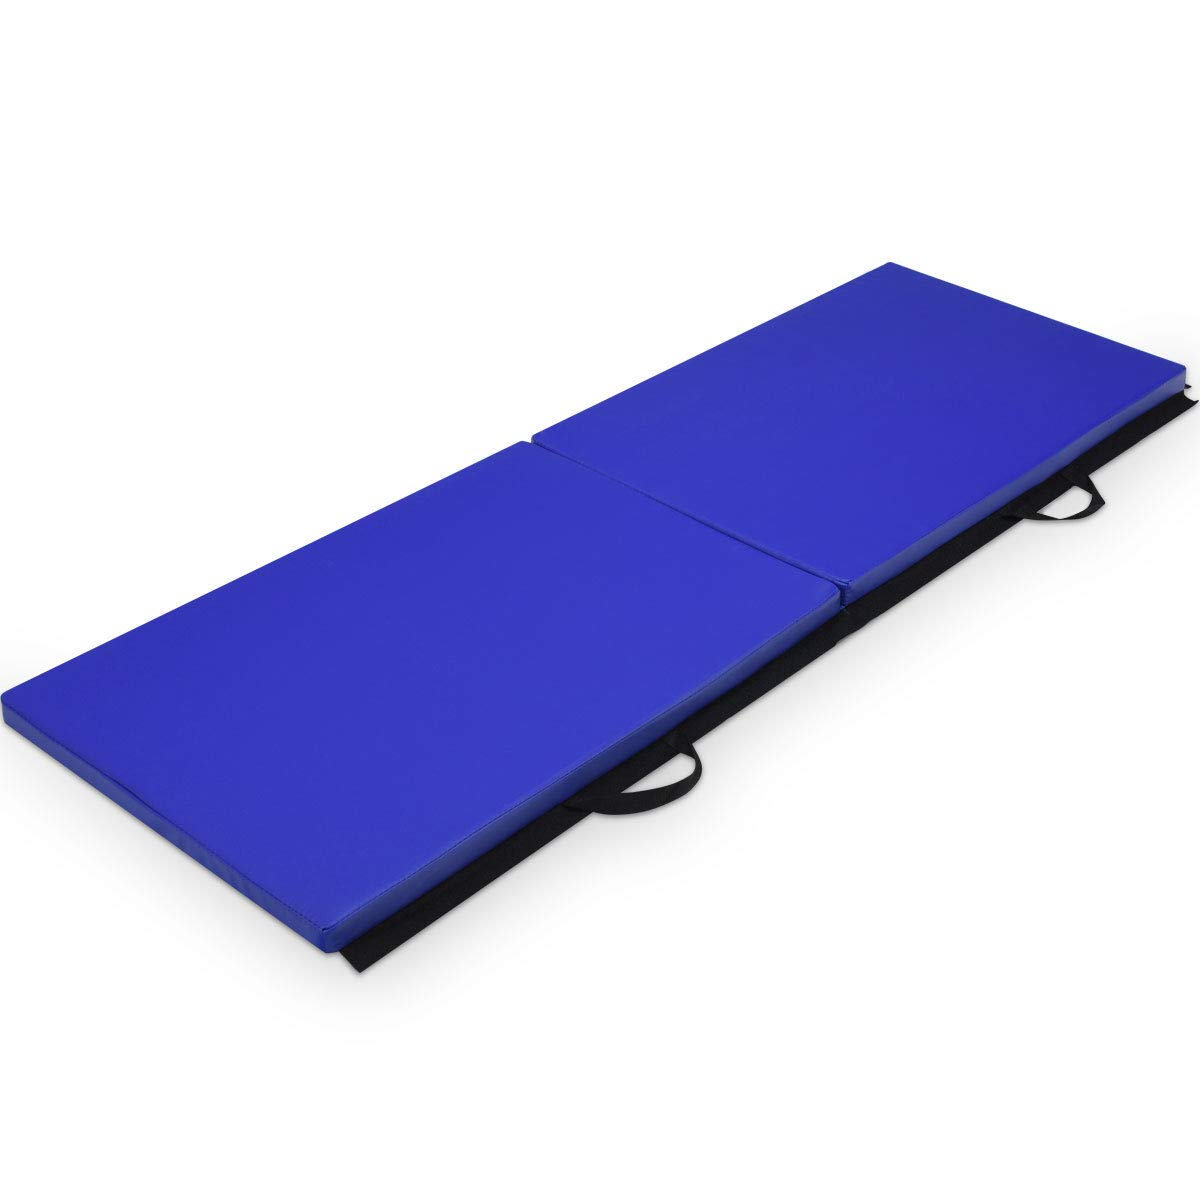 COSTWAY 6'X2'X1.5 Gymnastics Mat Thick Two Folding Panel Gym Fitness Exercise Blue